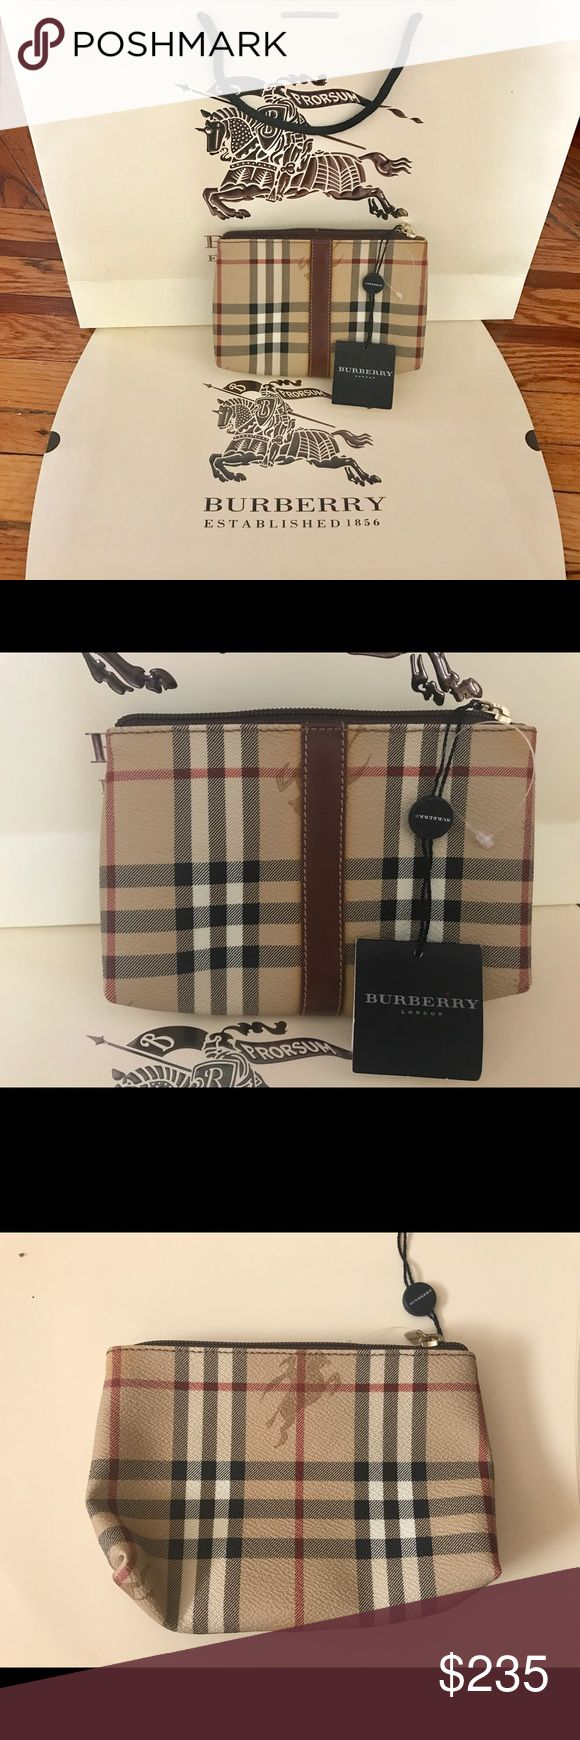 "Authentic Burberry nova check Pouch Perfect Pouch for make up, bills or receipts. 6.7"" by 4"". New with tags never used but the zipper pull hardware is a little scuffed (see close up). Comes with a beautiful Burberry gift box and bag. Burberry Bags Cosmetic Bags & Cases"